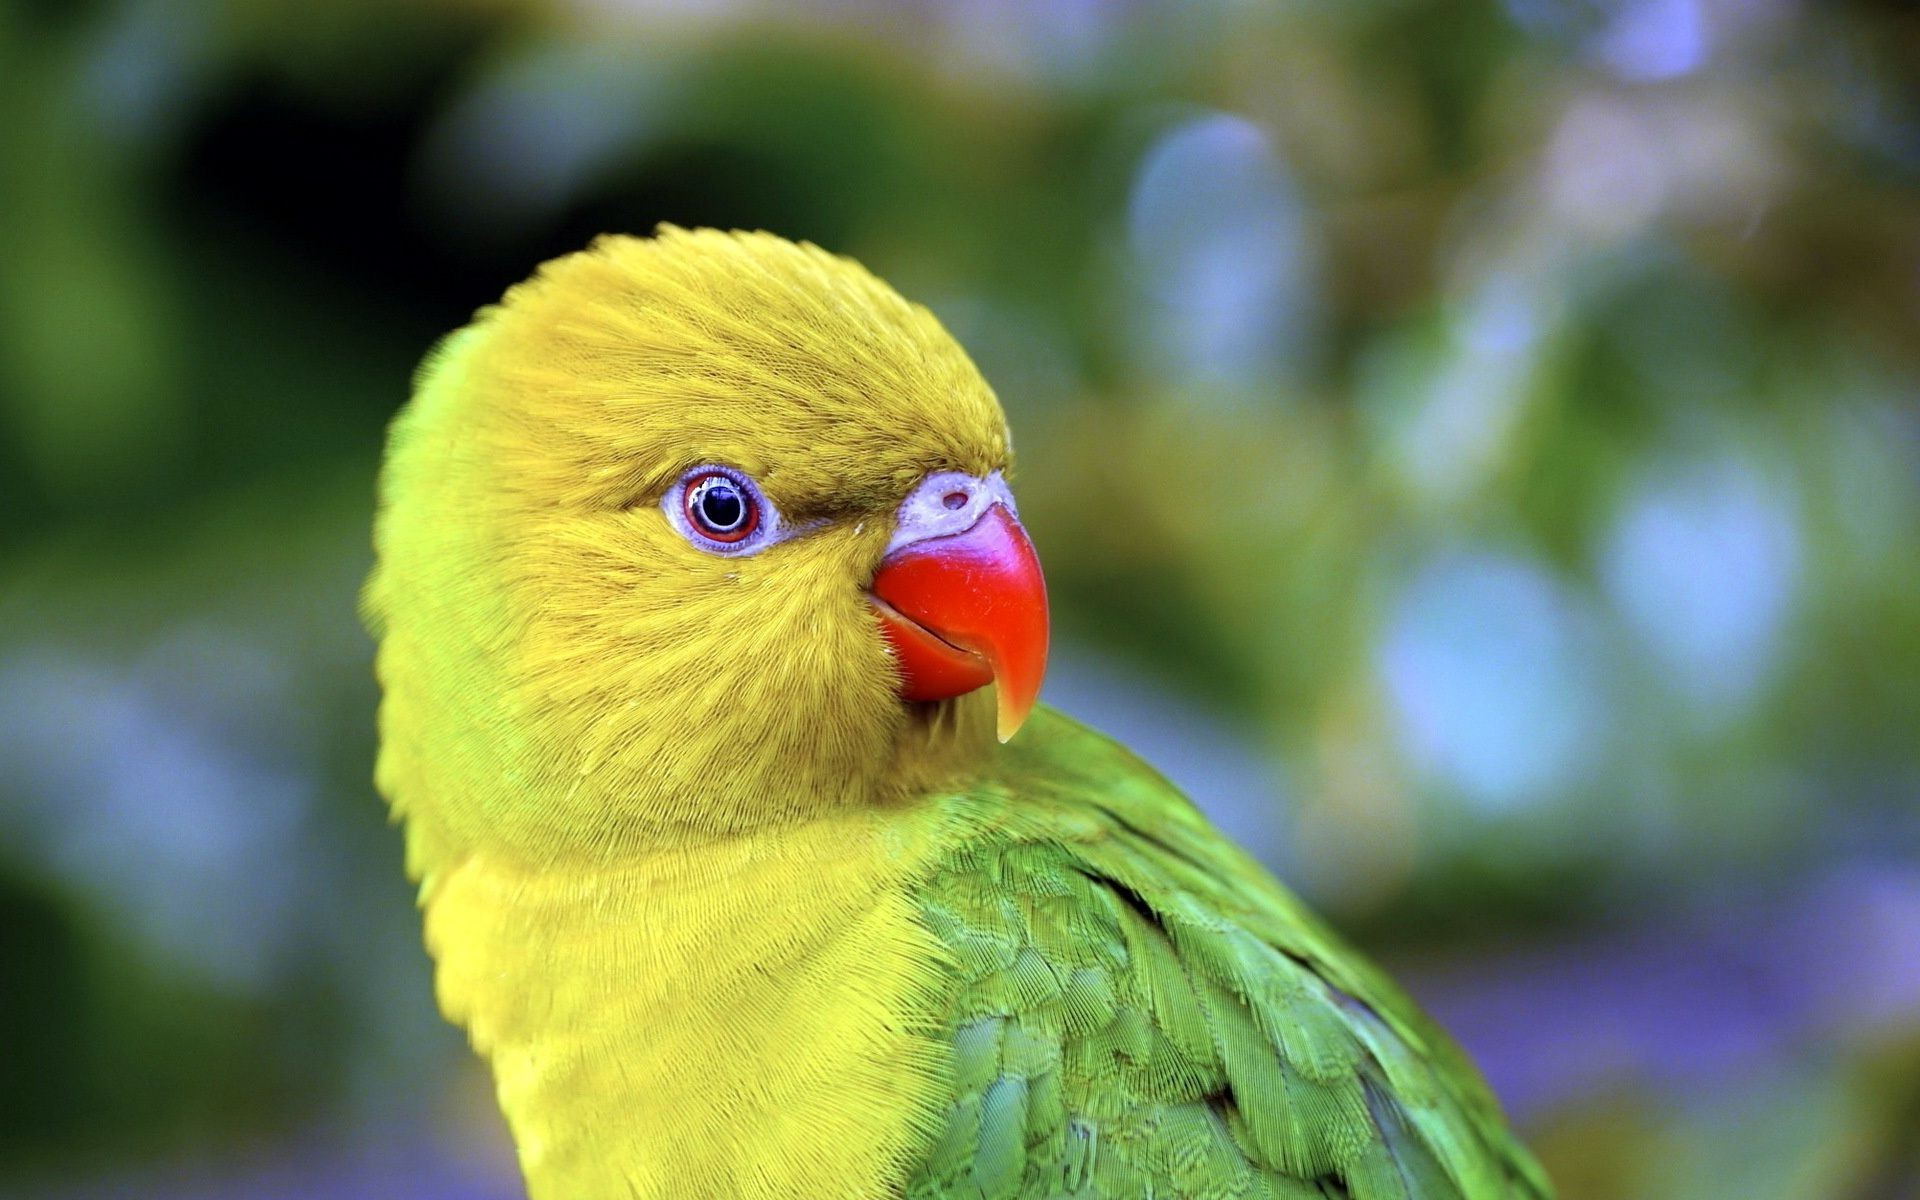 animals bird parrot nature wildlife animal outdoors beak parakeet feather tropical little color wild bright macaw